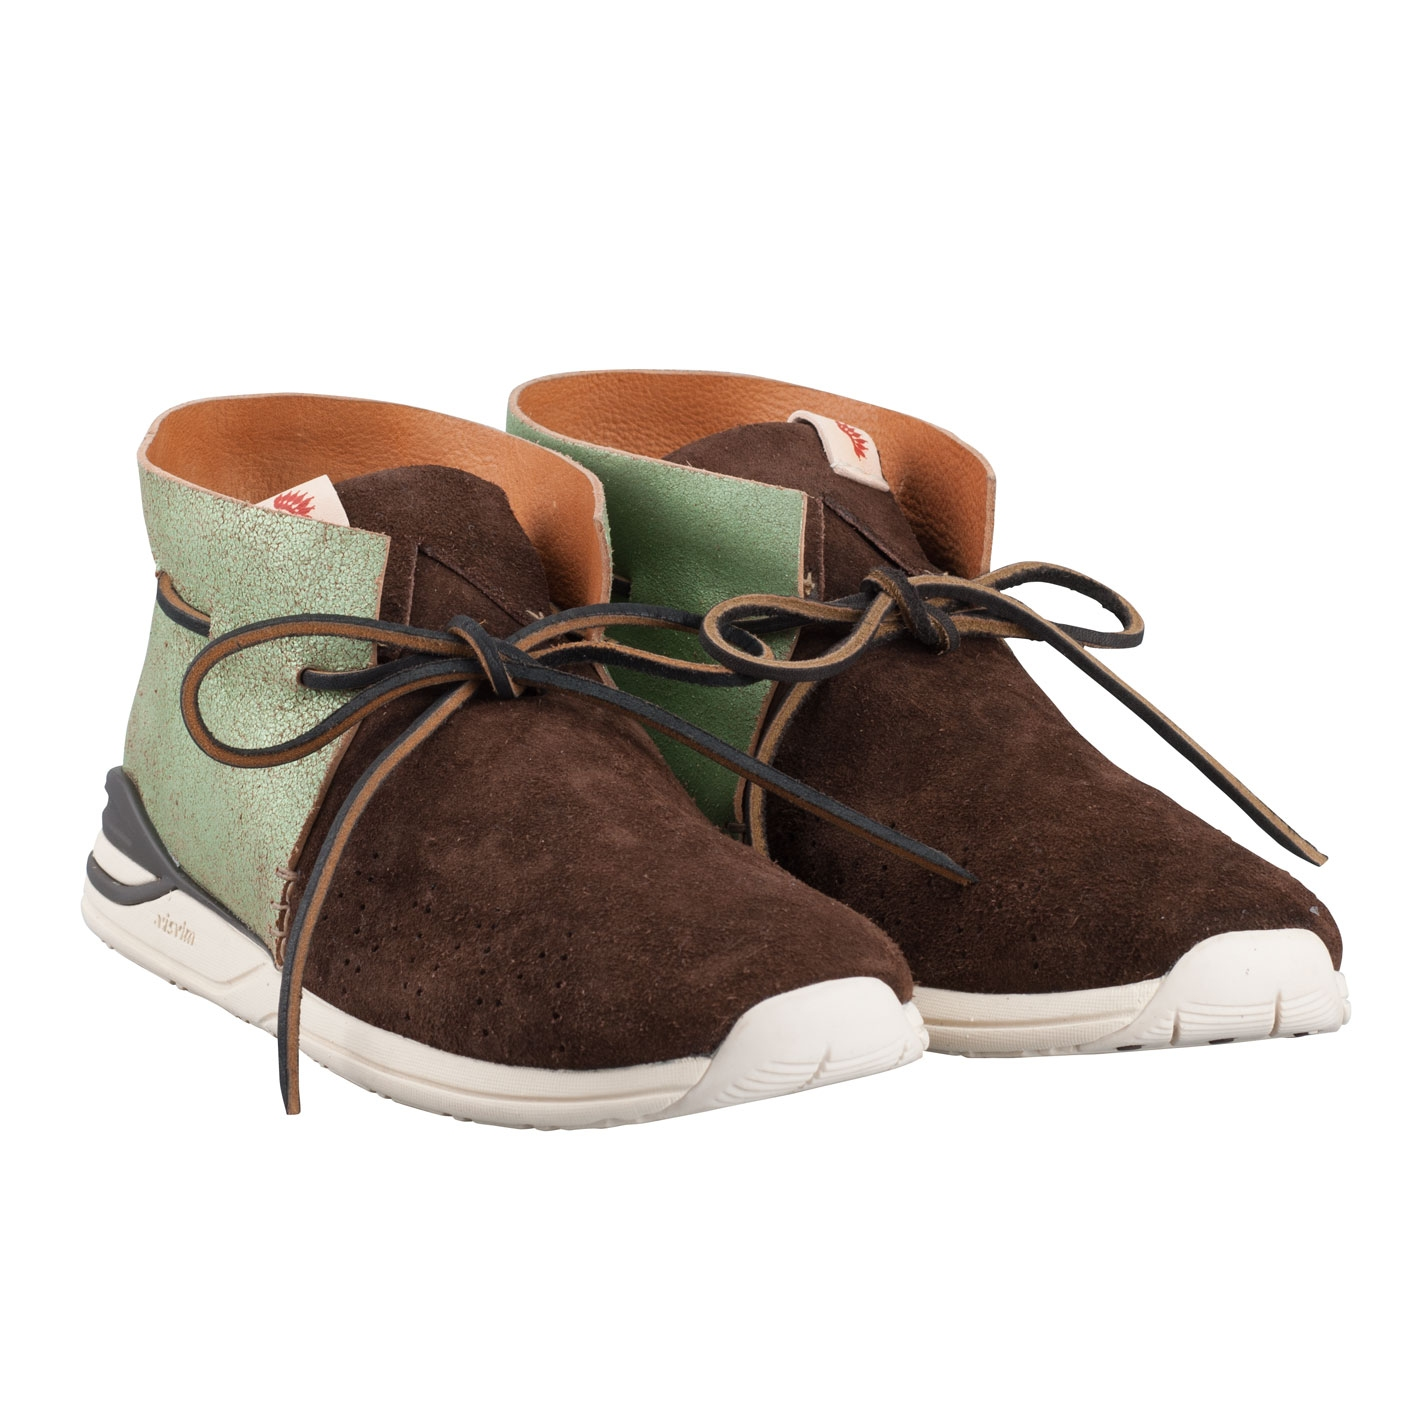 visvim - New arrivals and Recommend Items._c0079892_1922247.jpg